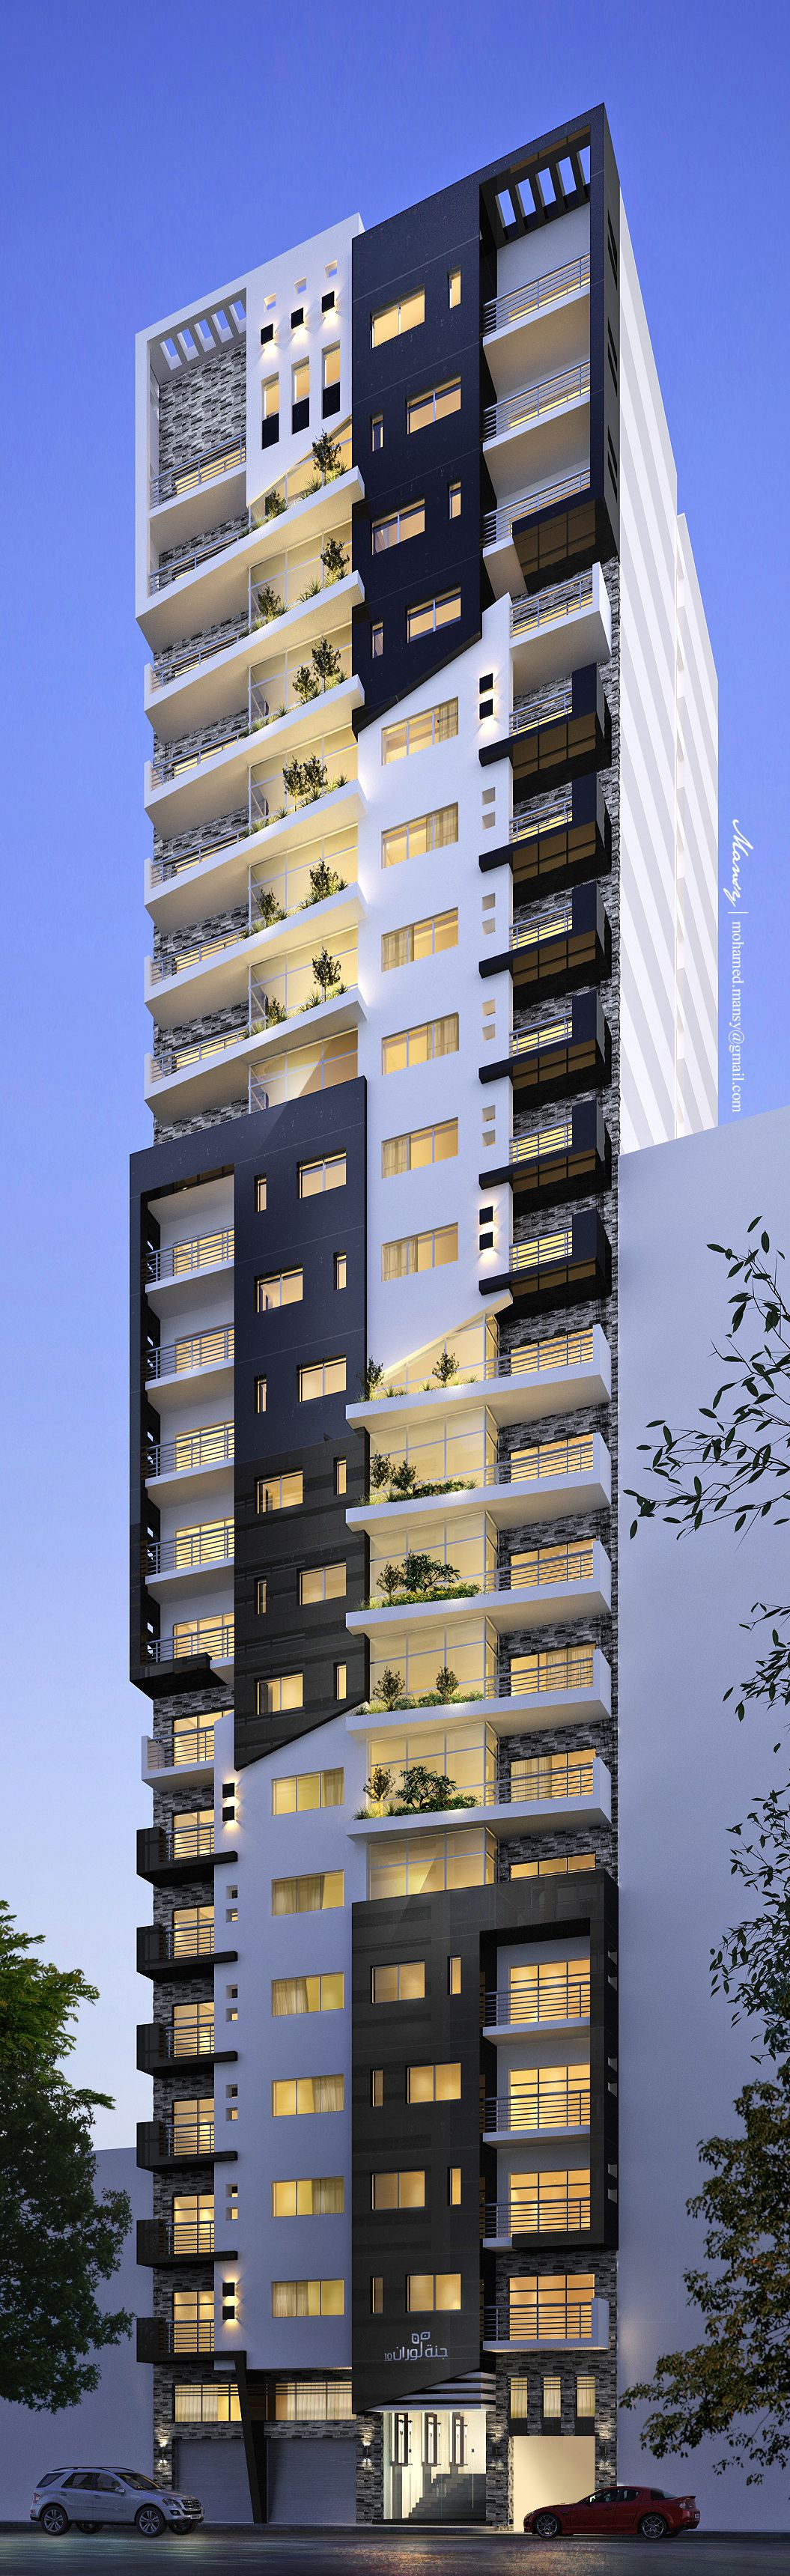 Architectural Design Of Residential Building Residential Building On Behance Appartment Design Concept